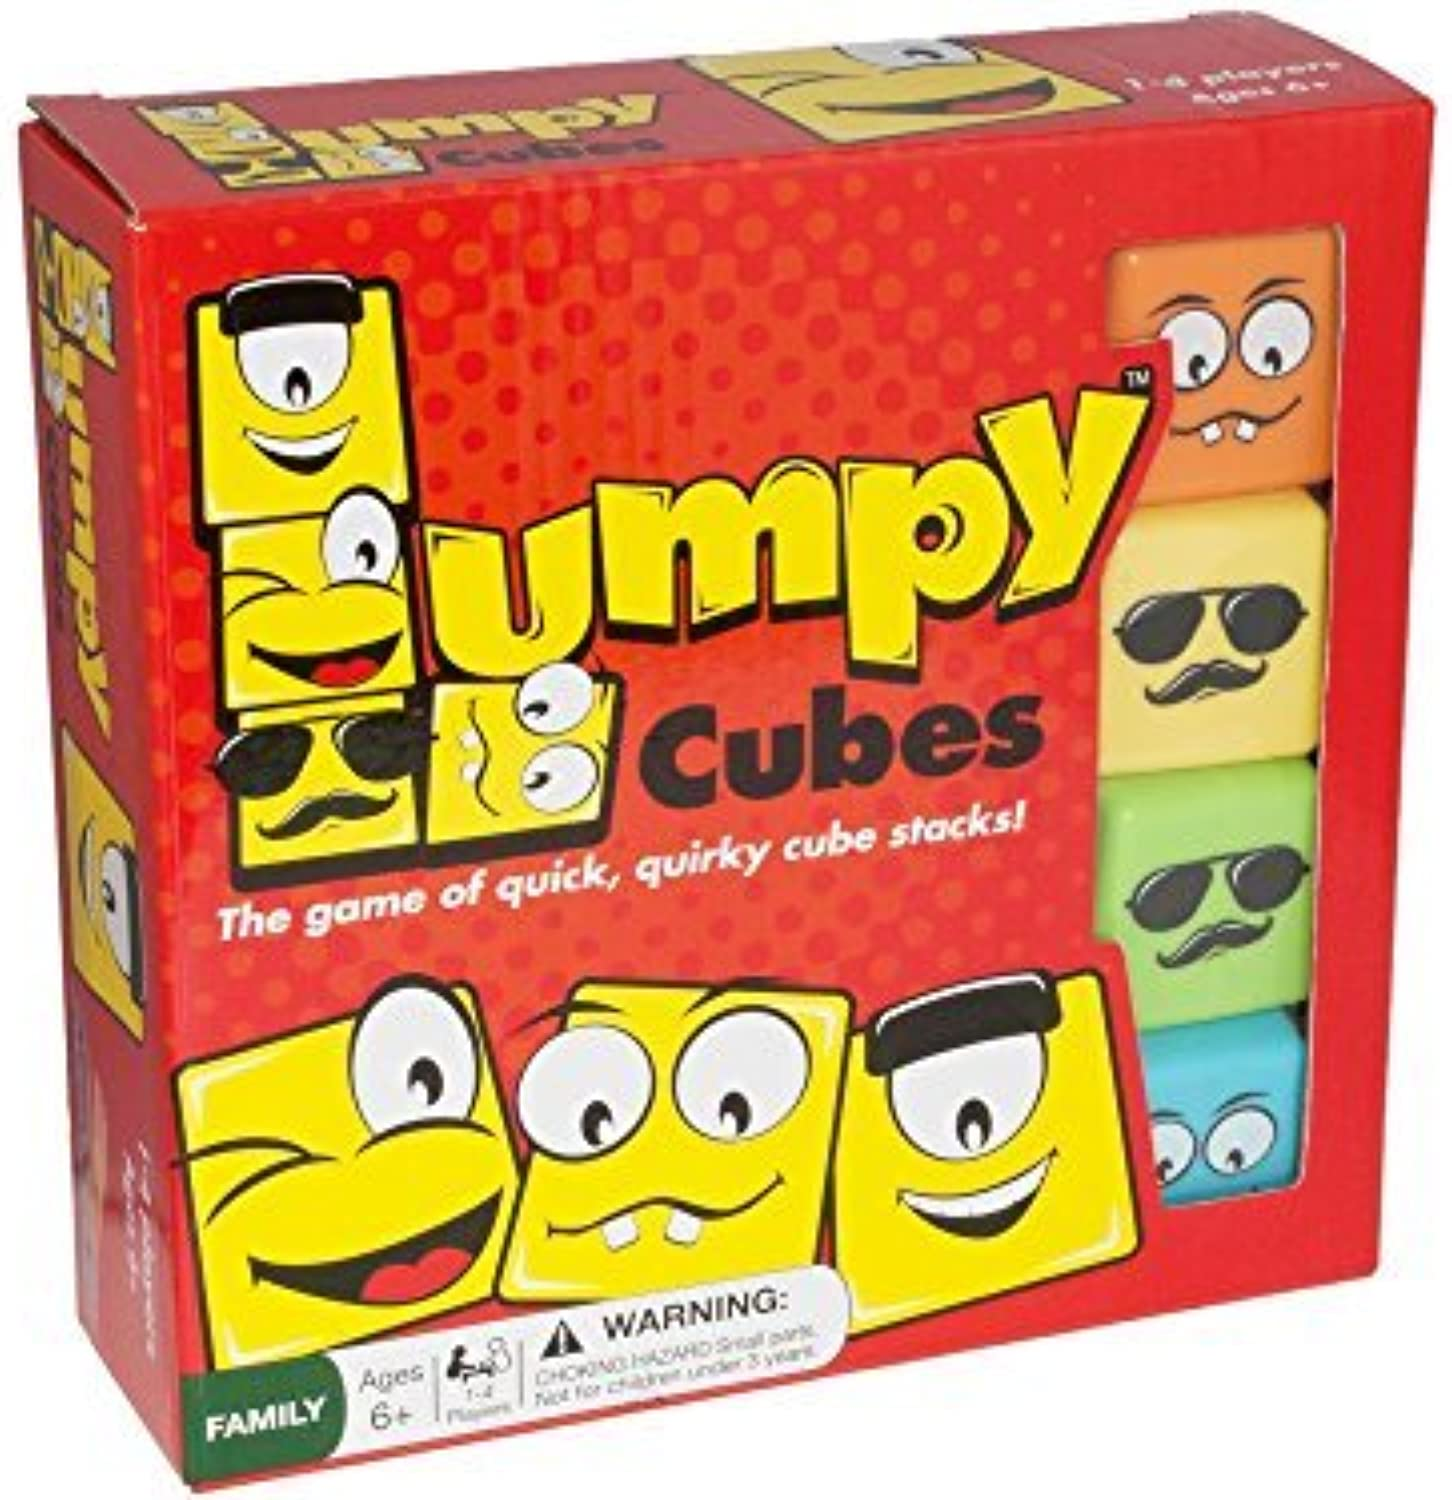 Lumpy Cubes  Cube Stacking Educational Family Game  Fun for Kids and Adults 6 Years and Up by RoosterFin